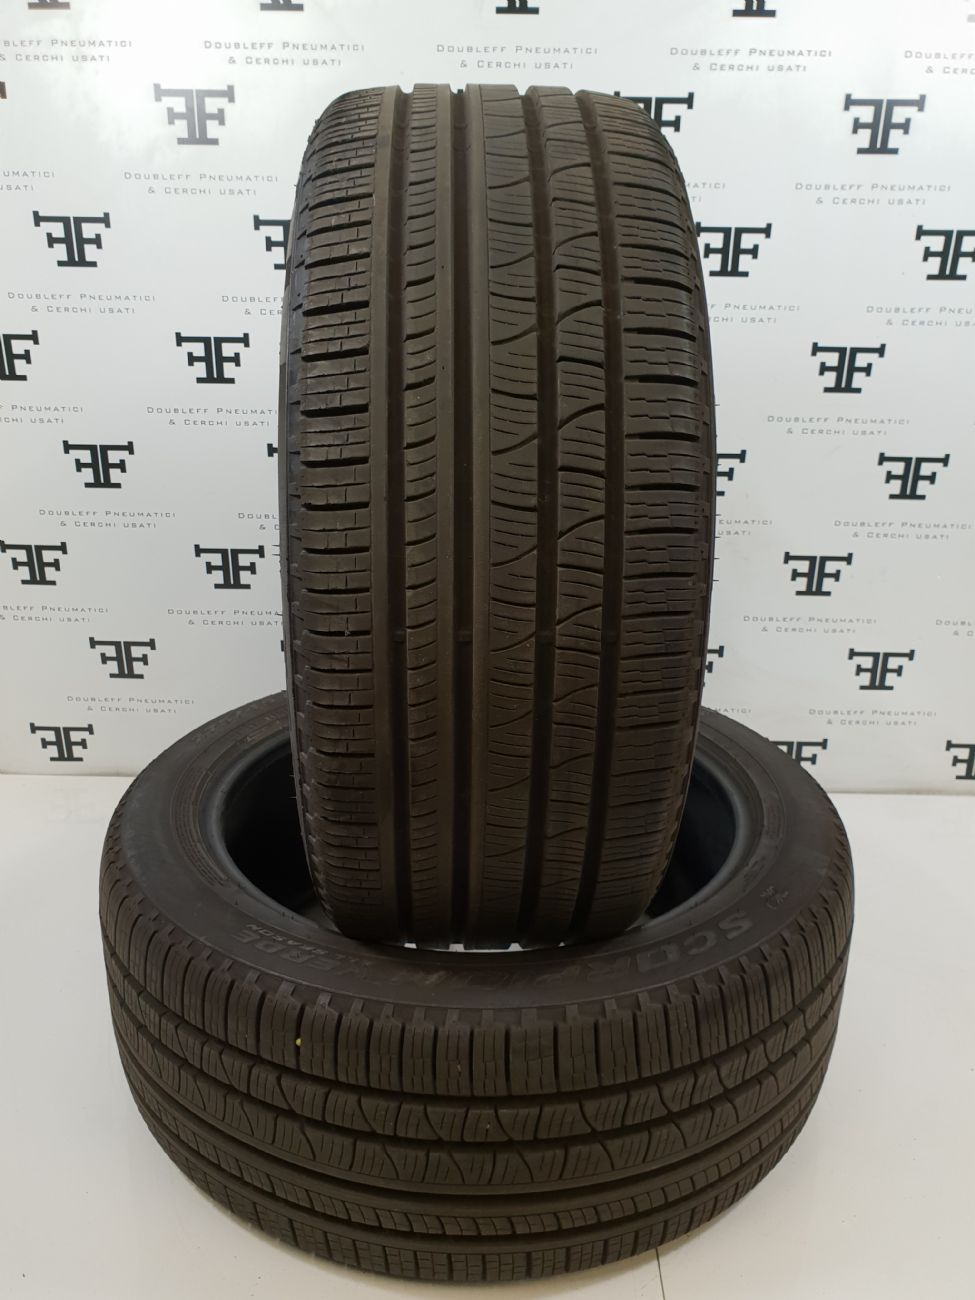 Pneumatici 275 40 R22 108 Y PIRELLI SCORPION VERDE ALL SEASON 4 seasons usati 200€